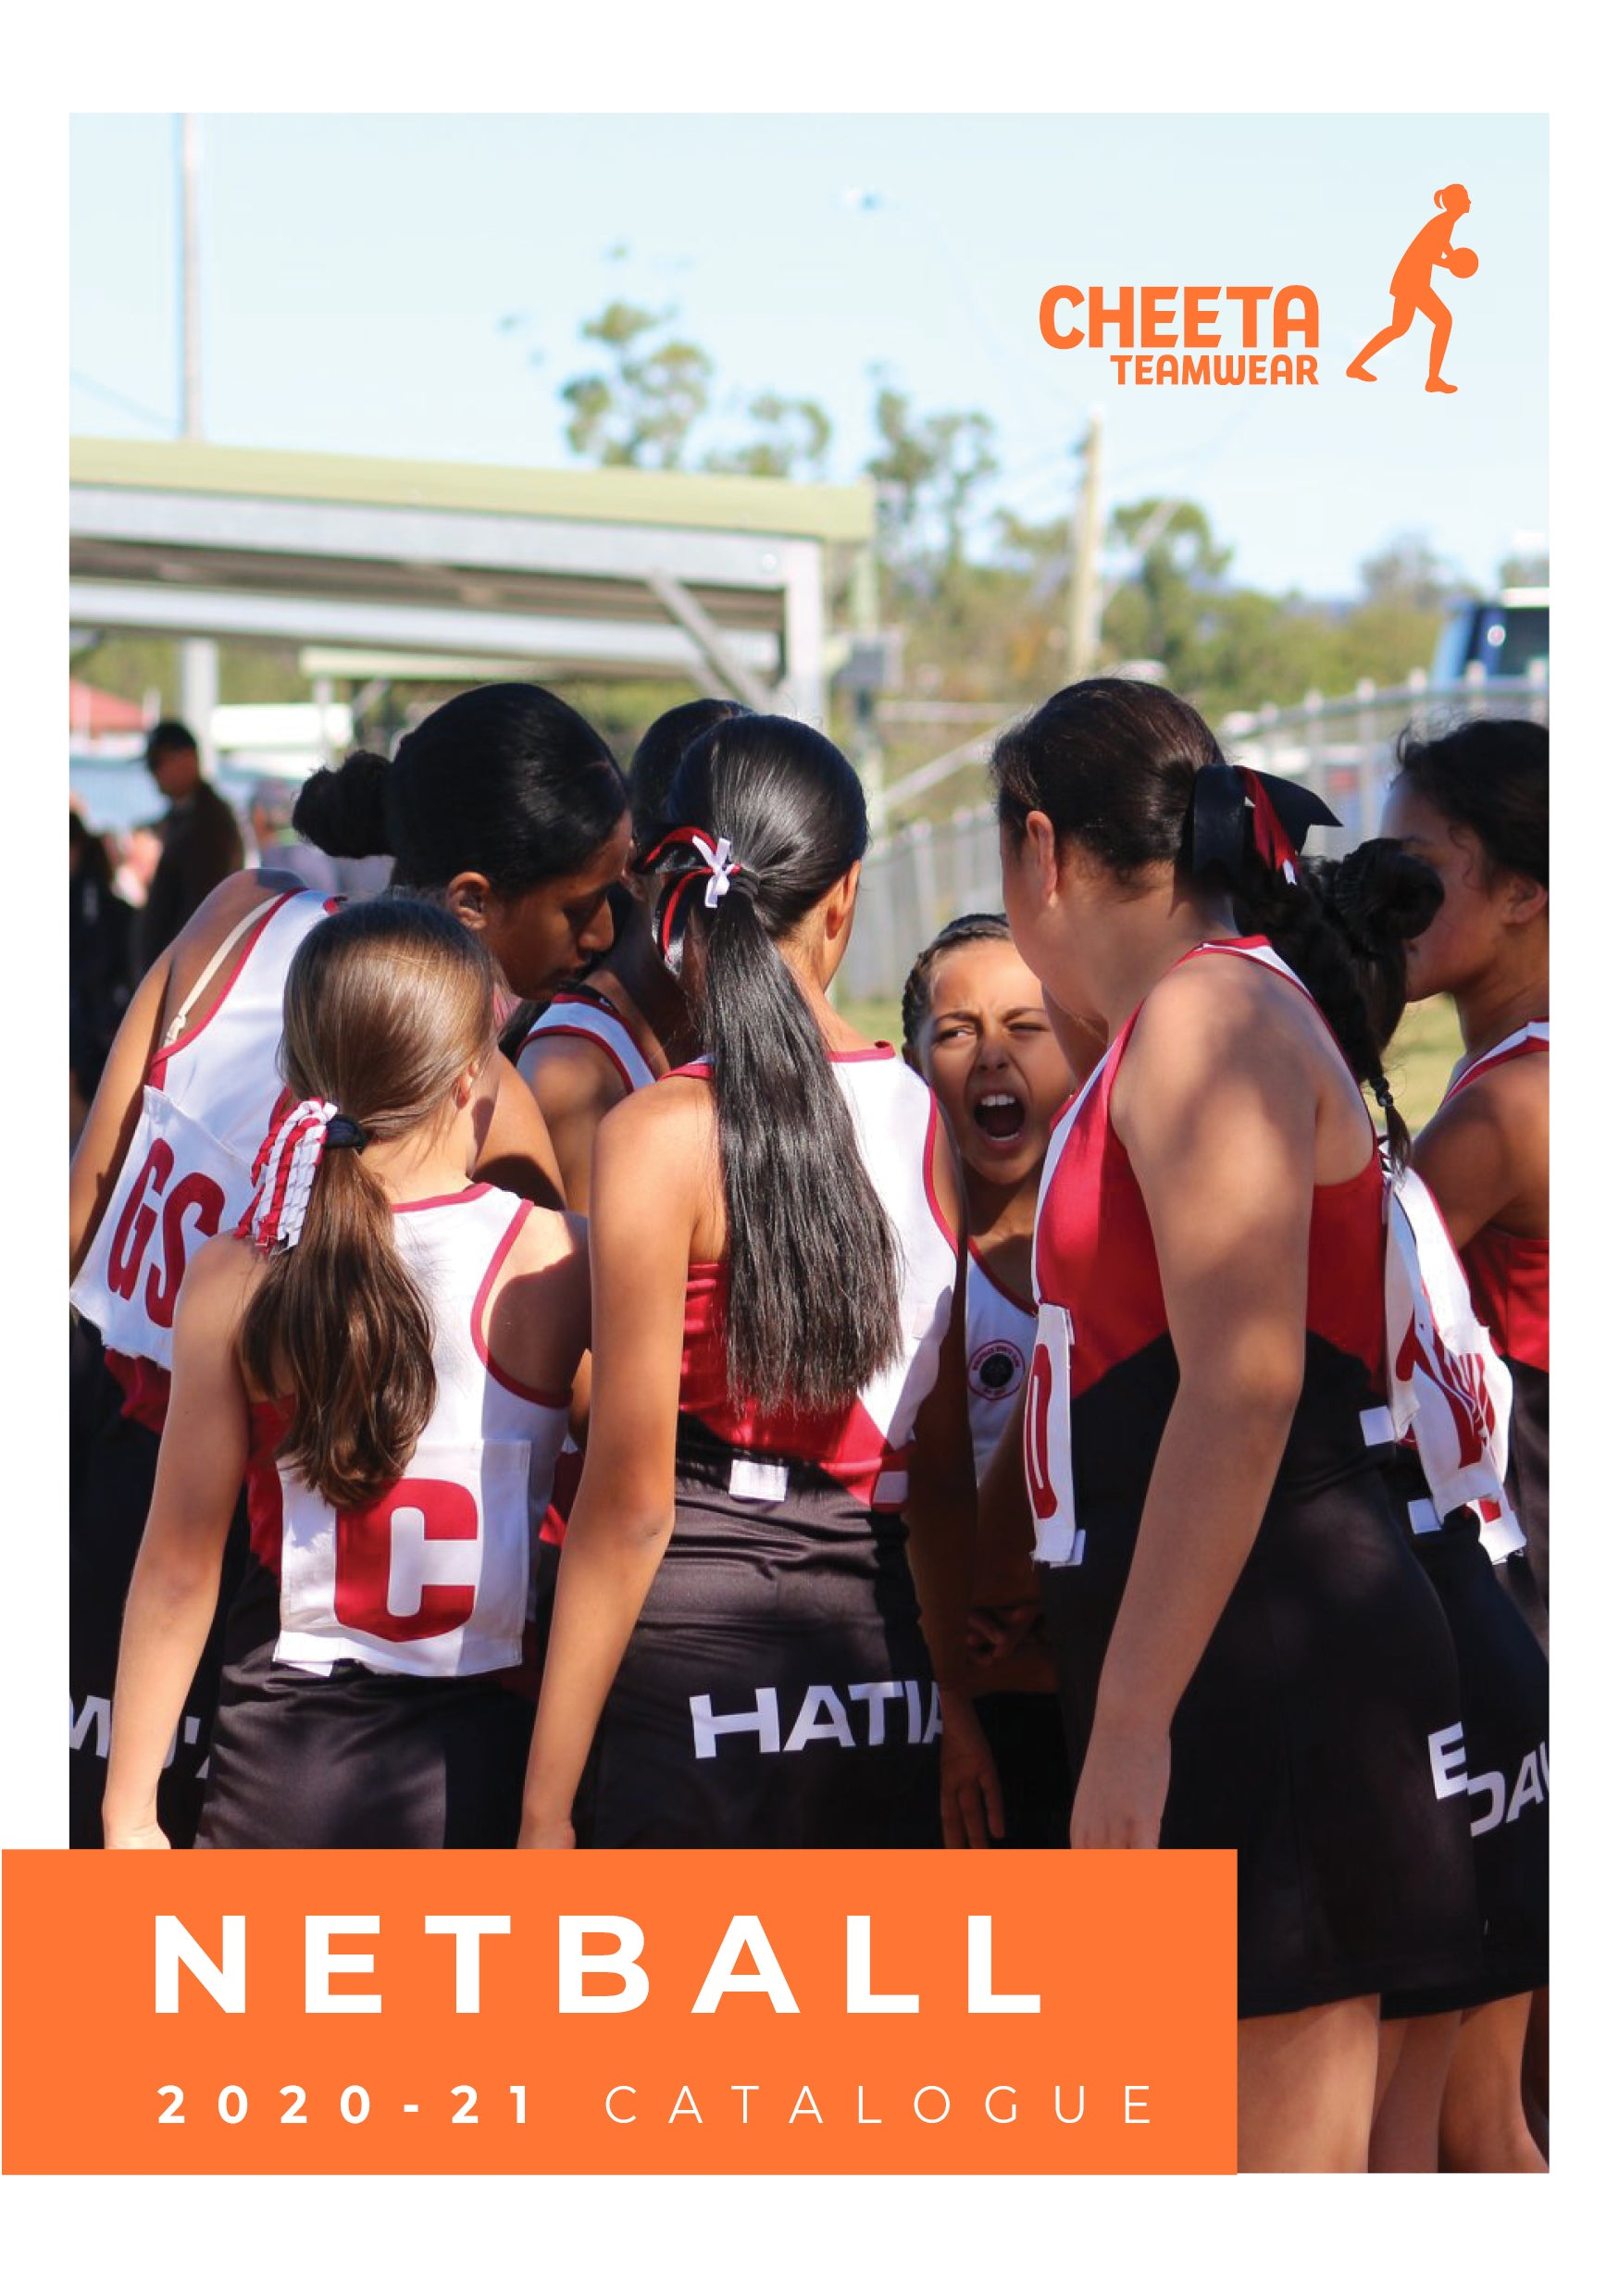 Netball Dresses and Uniforms